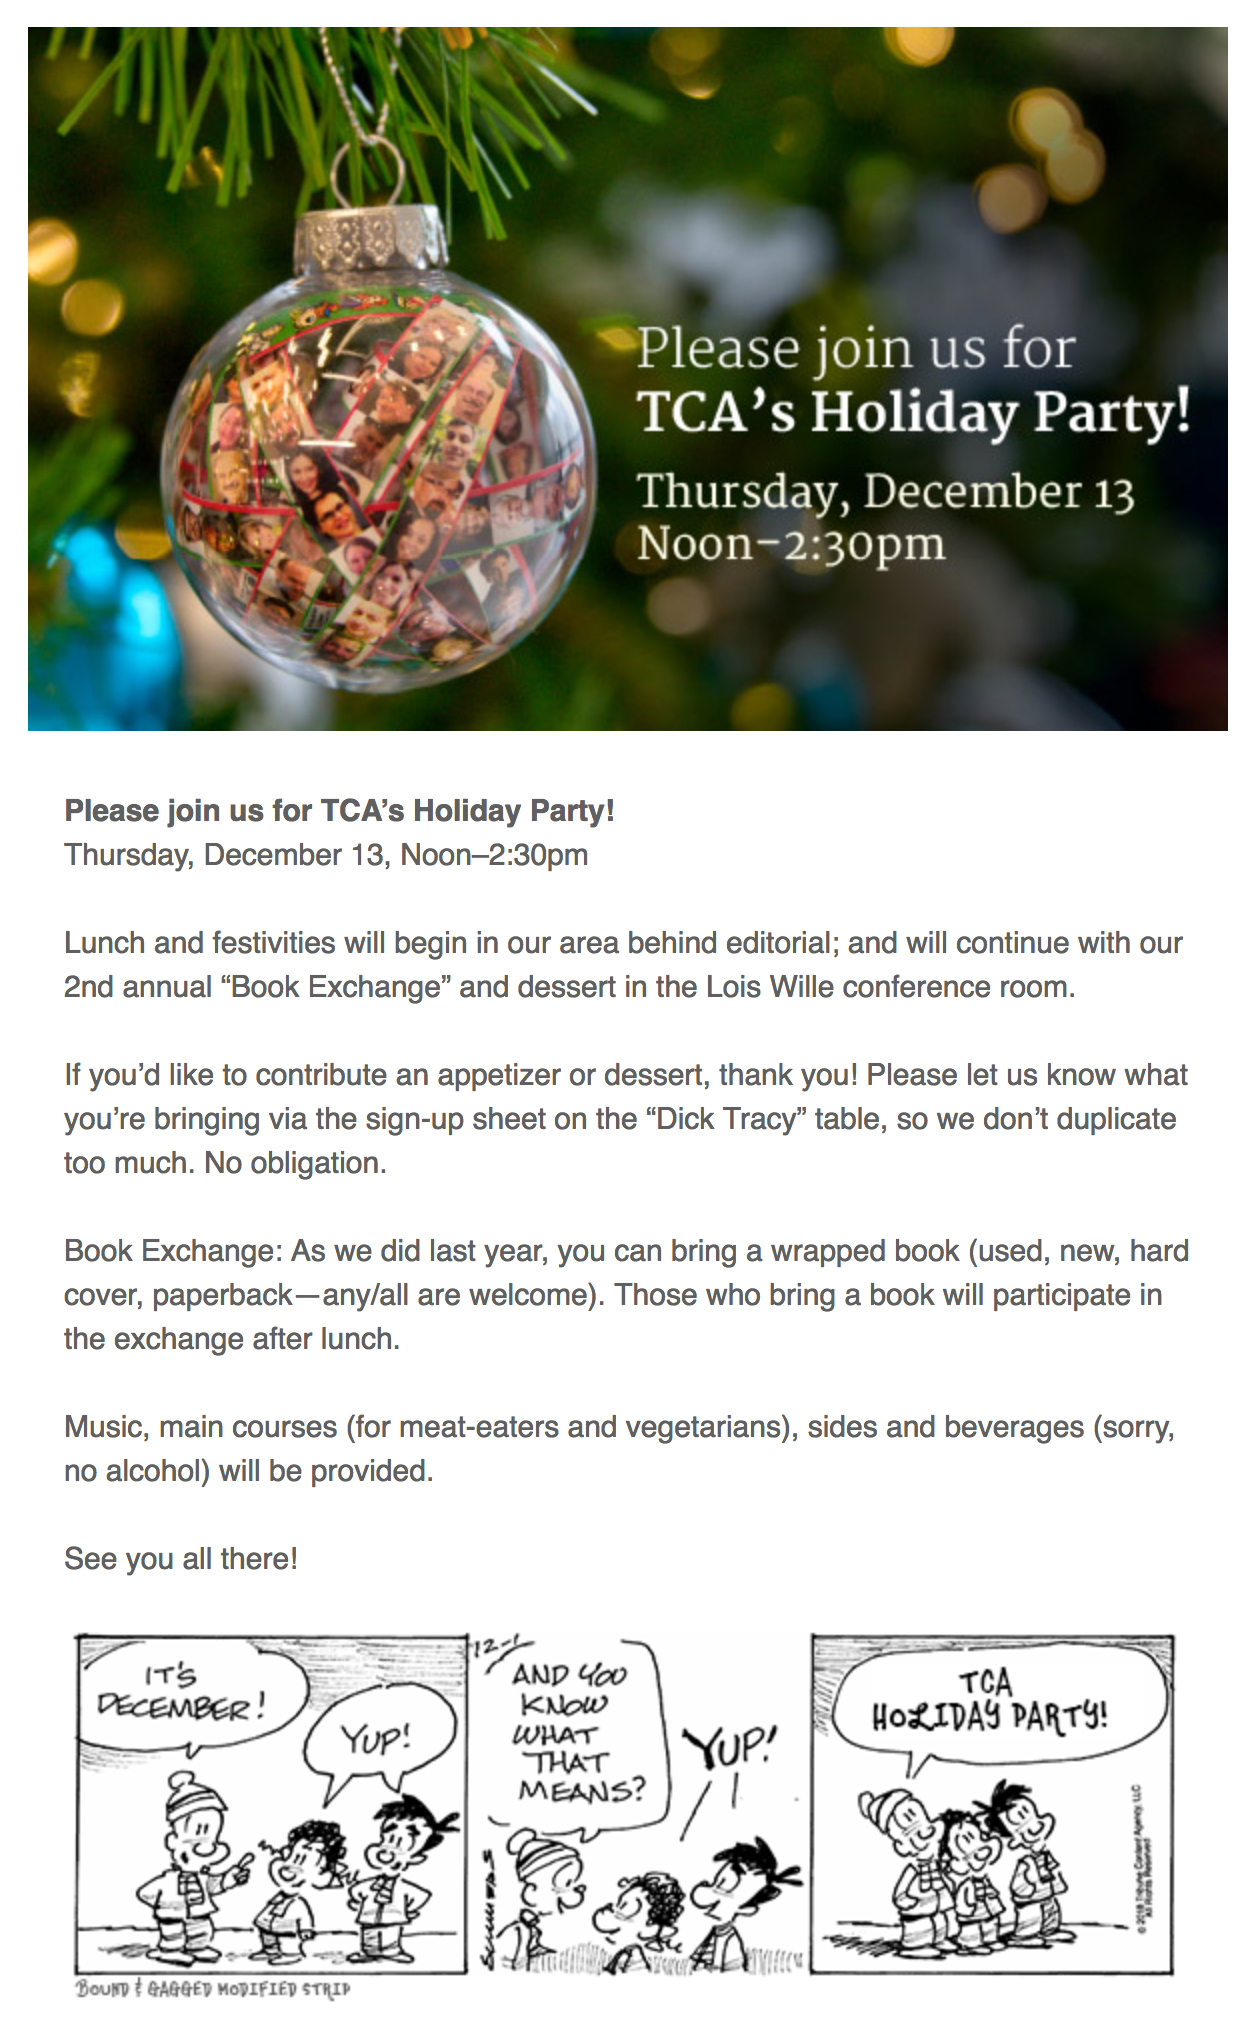 TCA Holiday invite: email